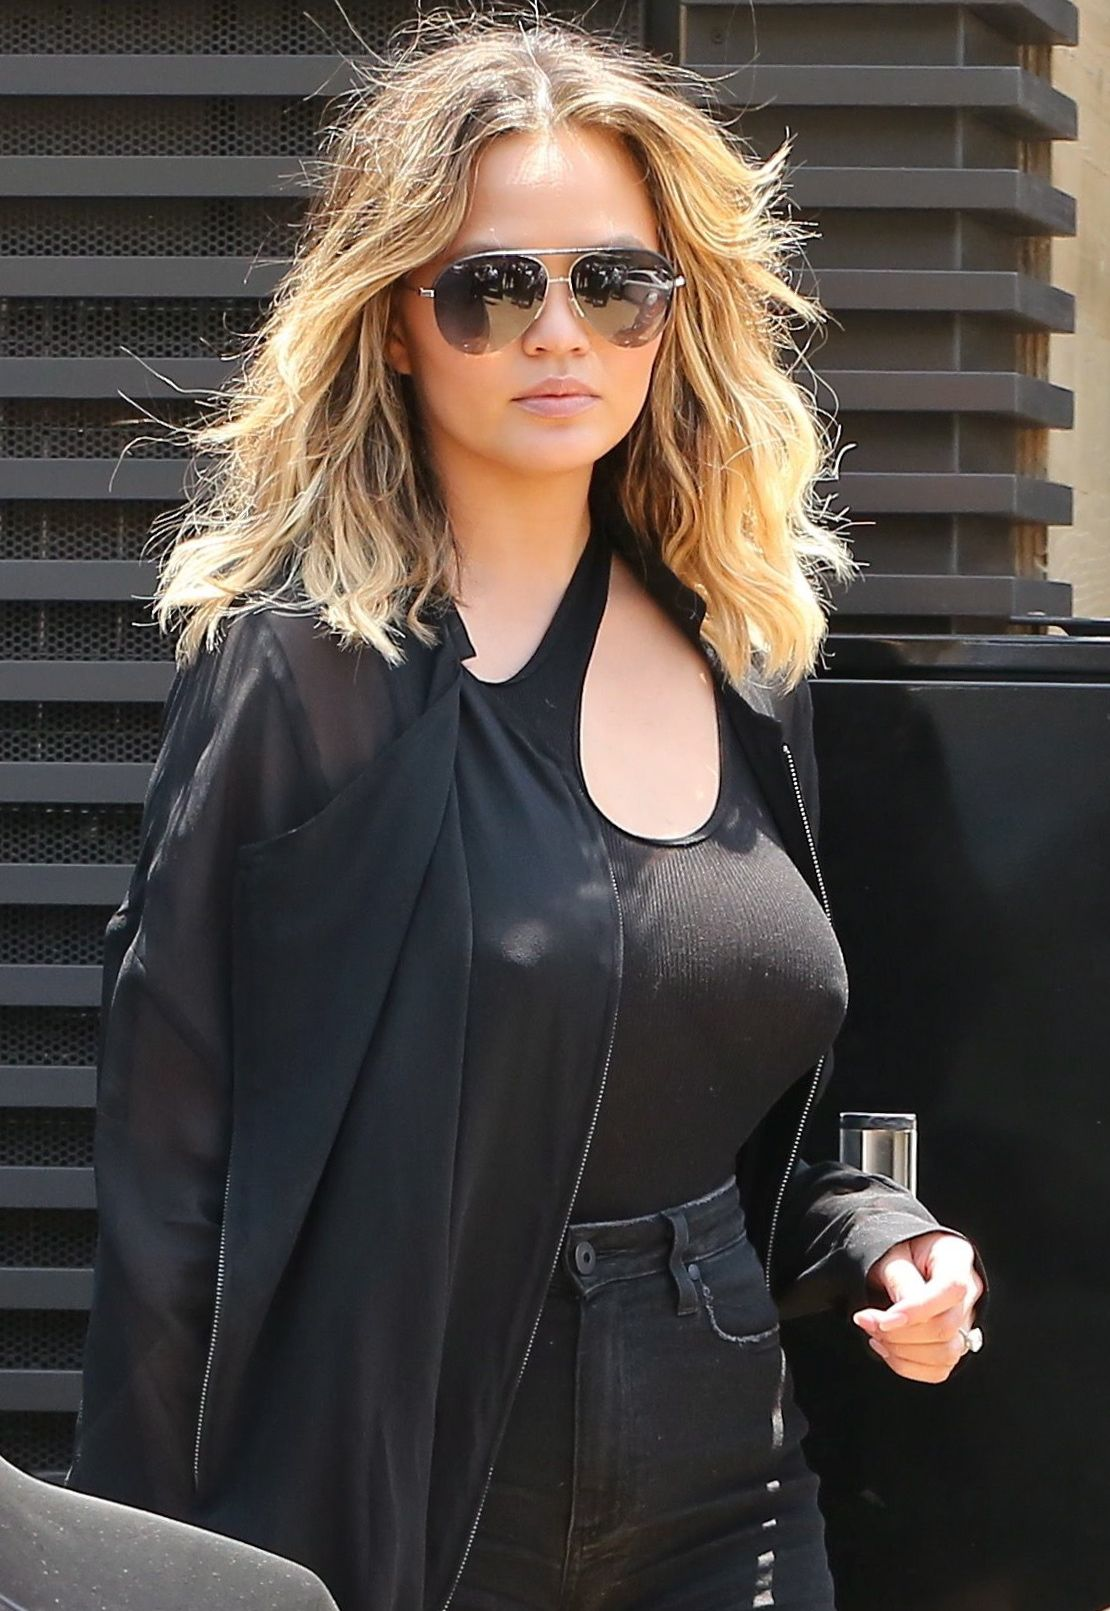 Chrissy-Teigen-Braless-1